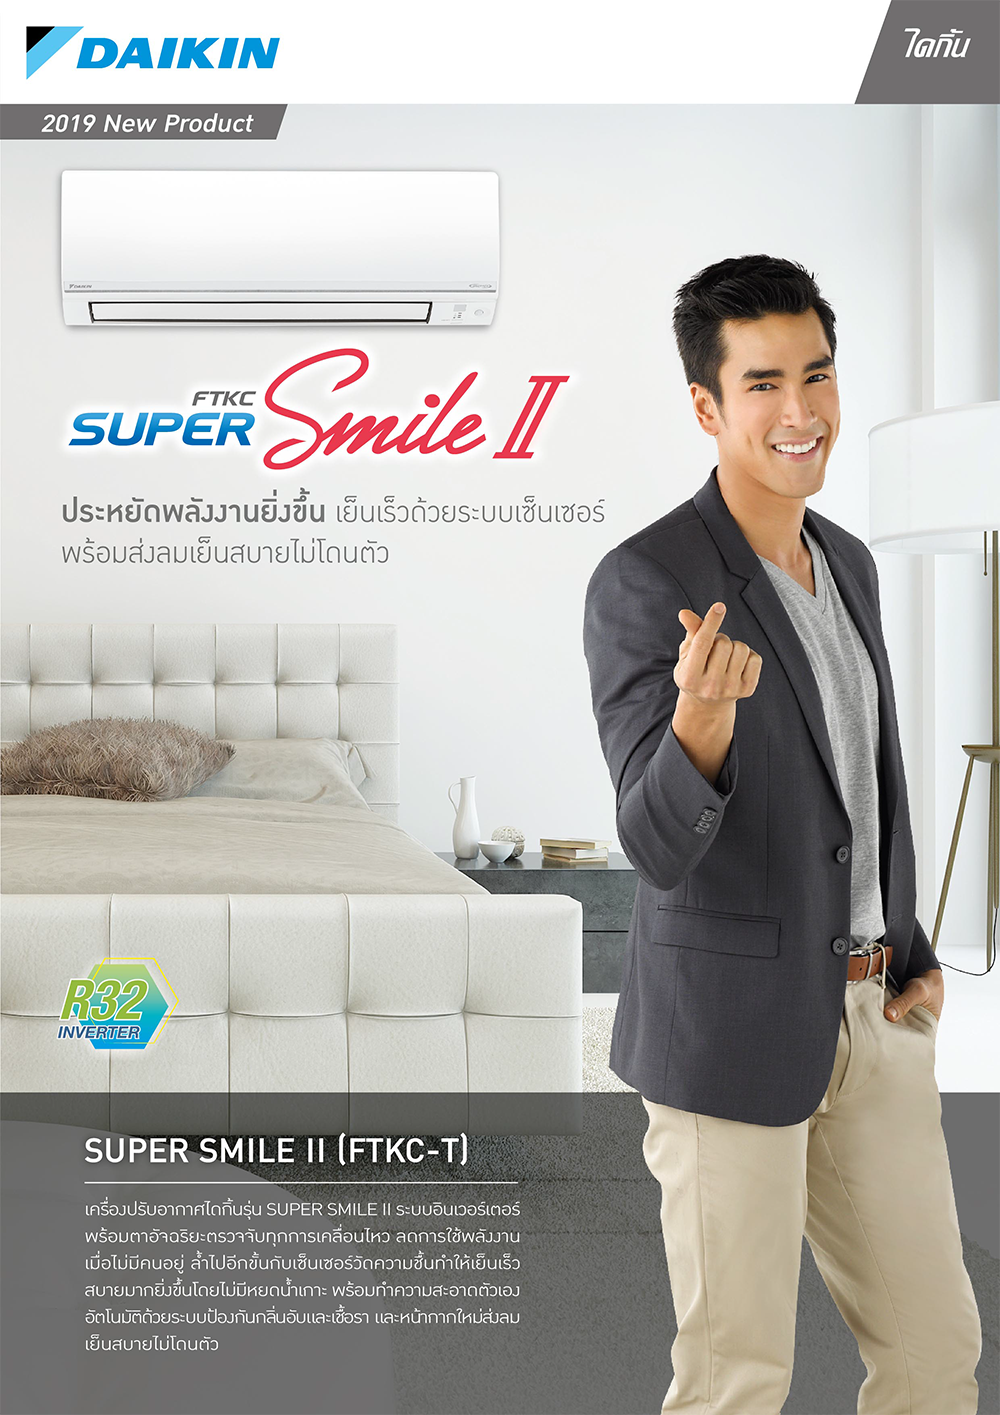 Super Smile II